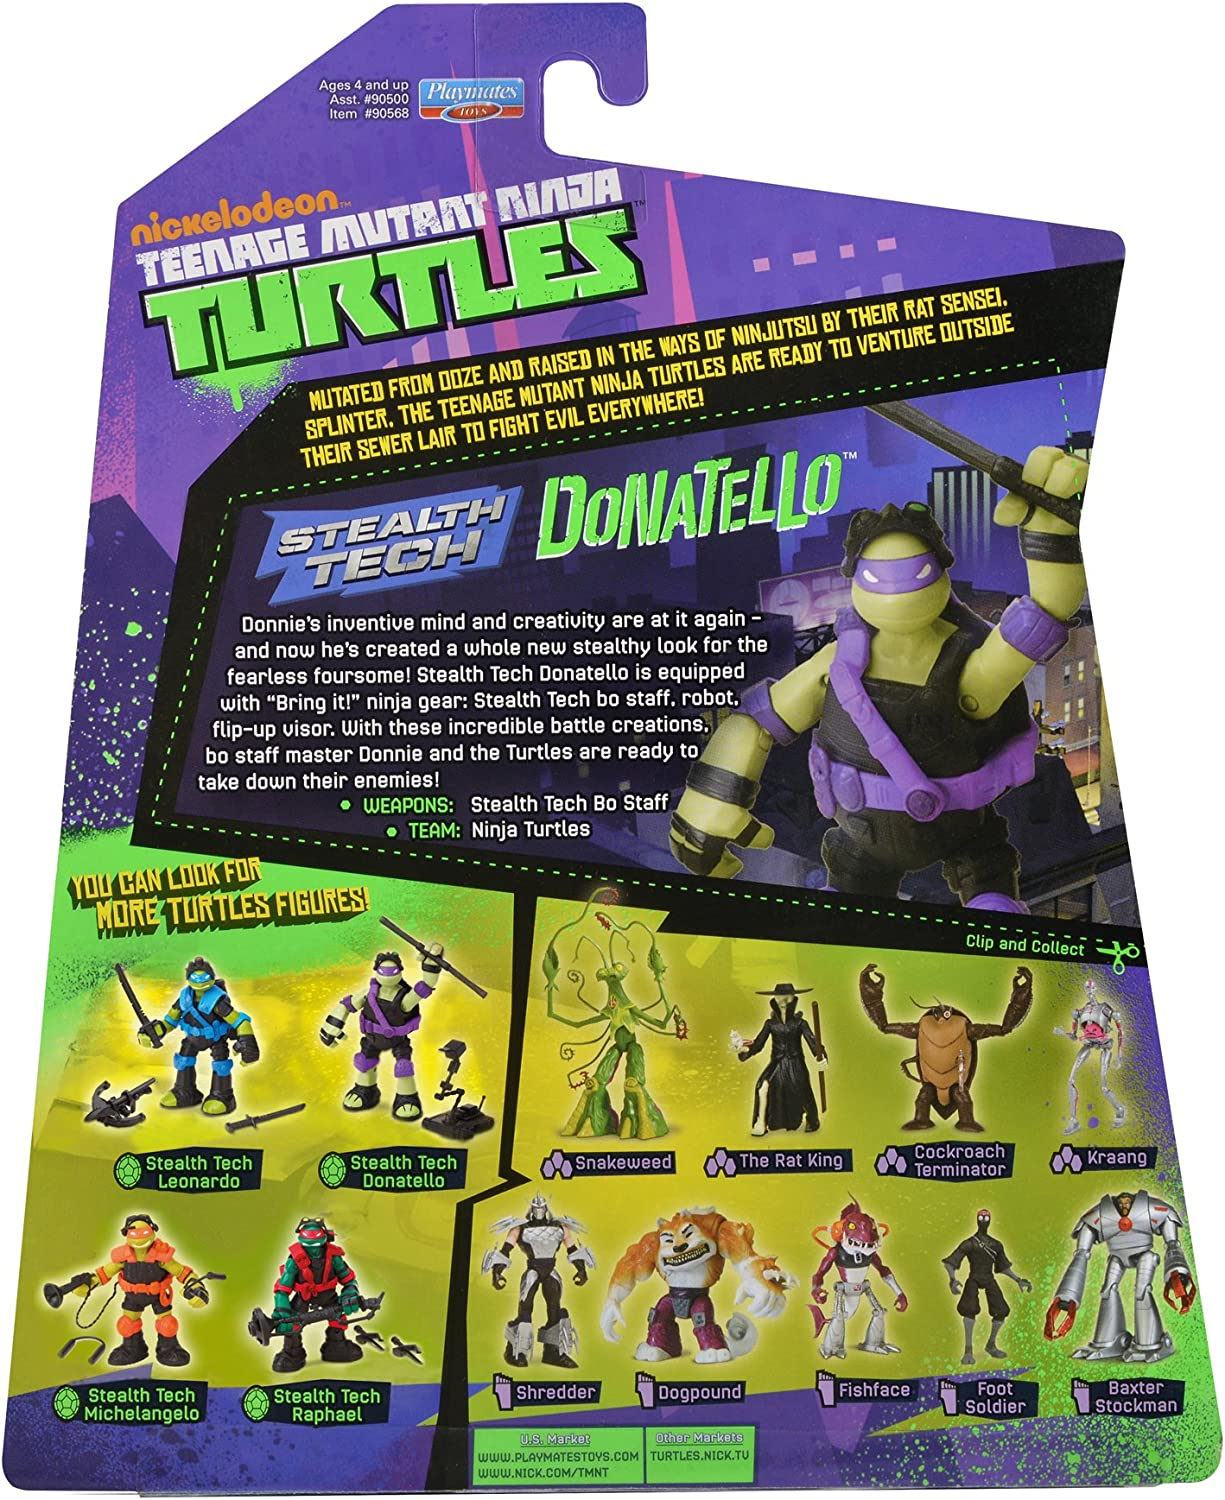 Amazon.com: Teenage Mutant Ninja Turtles Stealth Tech ...